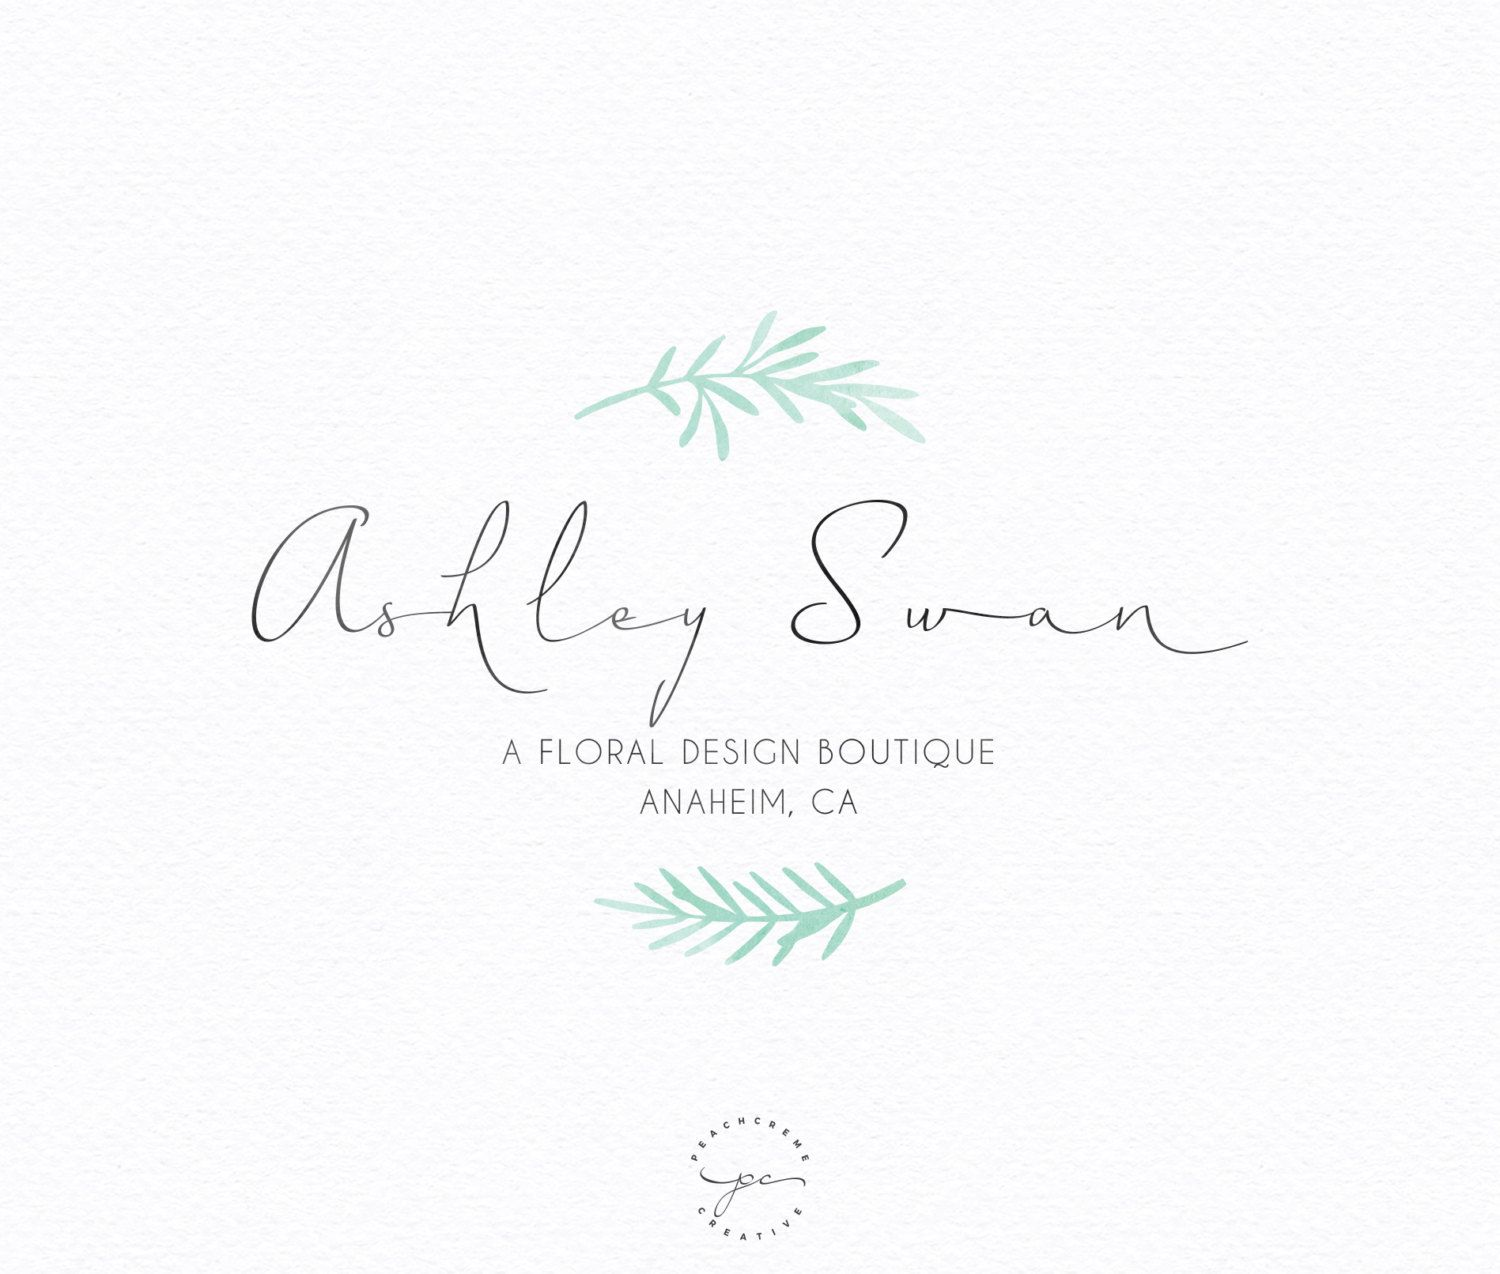 Premade Logo Design - Flower Wreath Watercolor Logo - Photography Logo - Small Business Logo Mint Watercolor vintage rustic custom logo by PeachCreme on Etsy